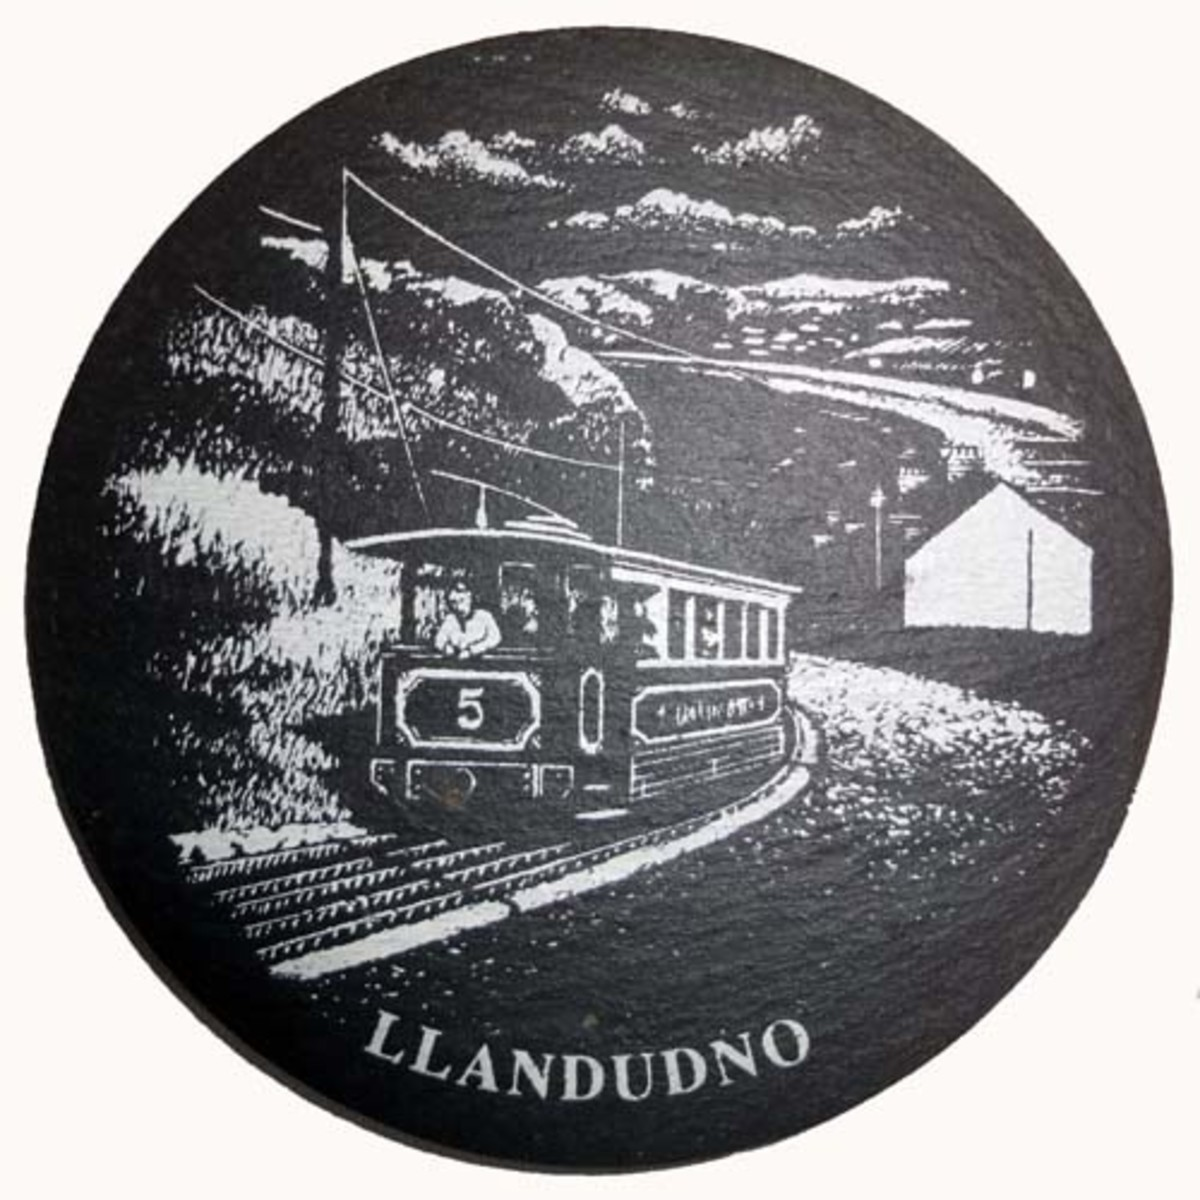 Slate coaster of Llandudno, North Wales